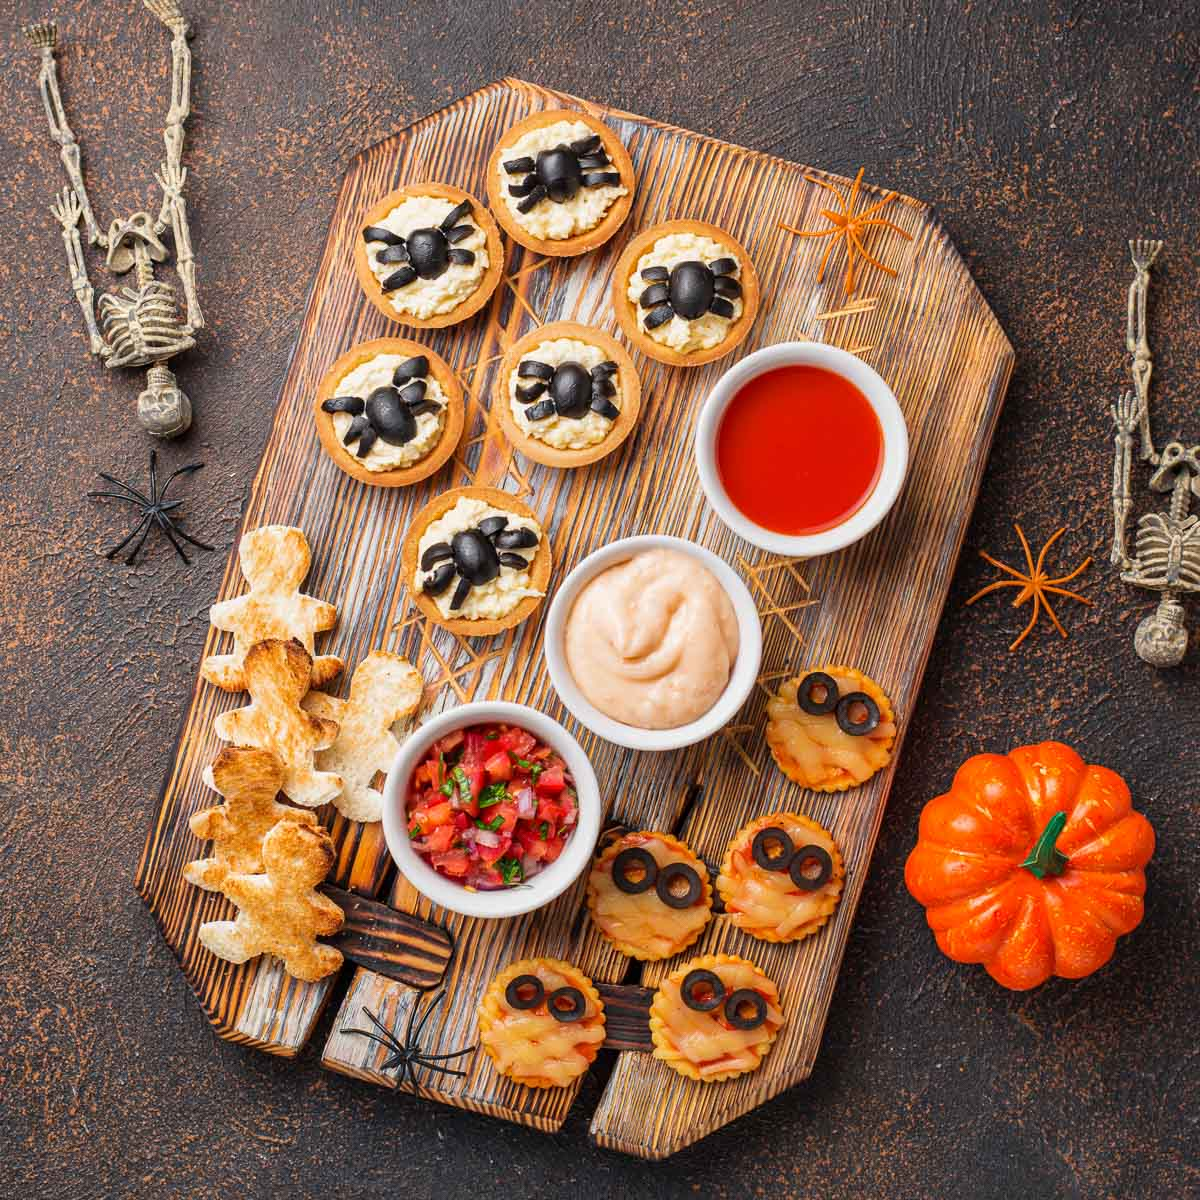 Overhead view of a platter covered with mini mummy pizzas, and tarts covered with olive spiders, amongst other foods.